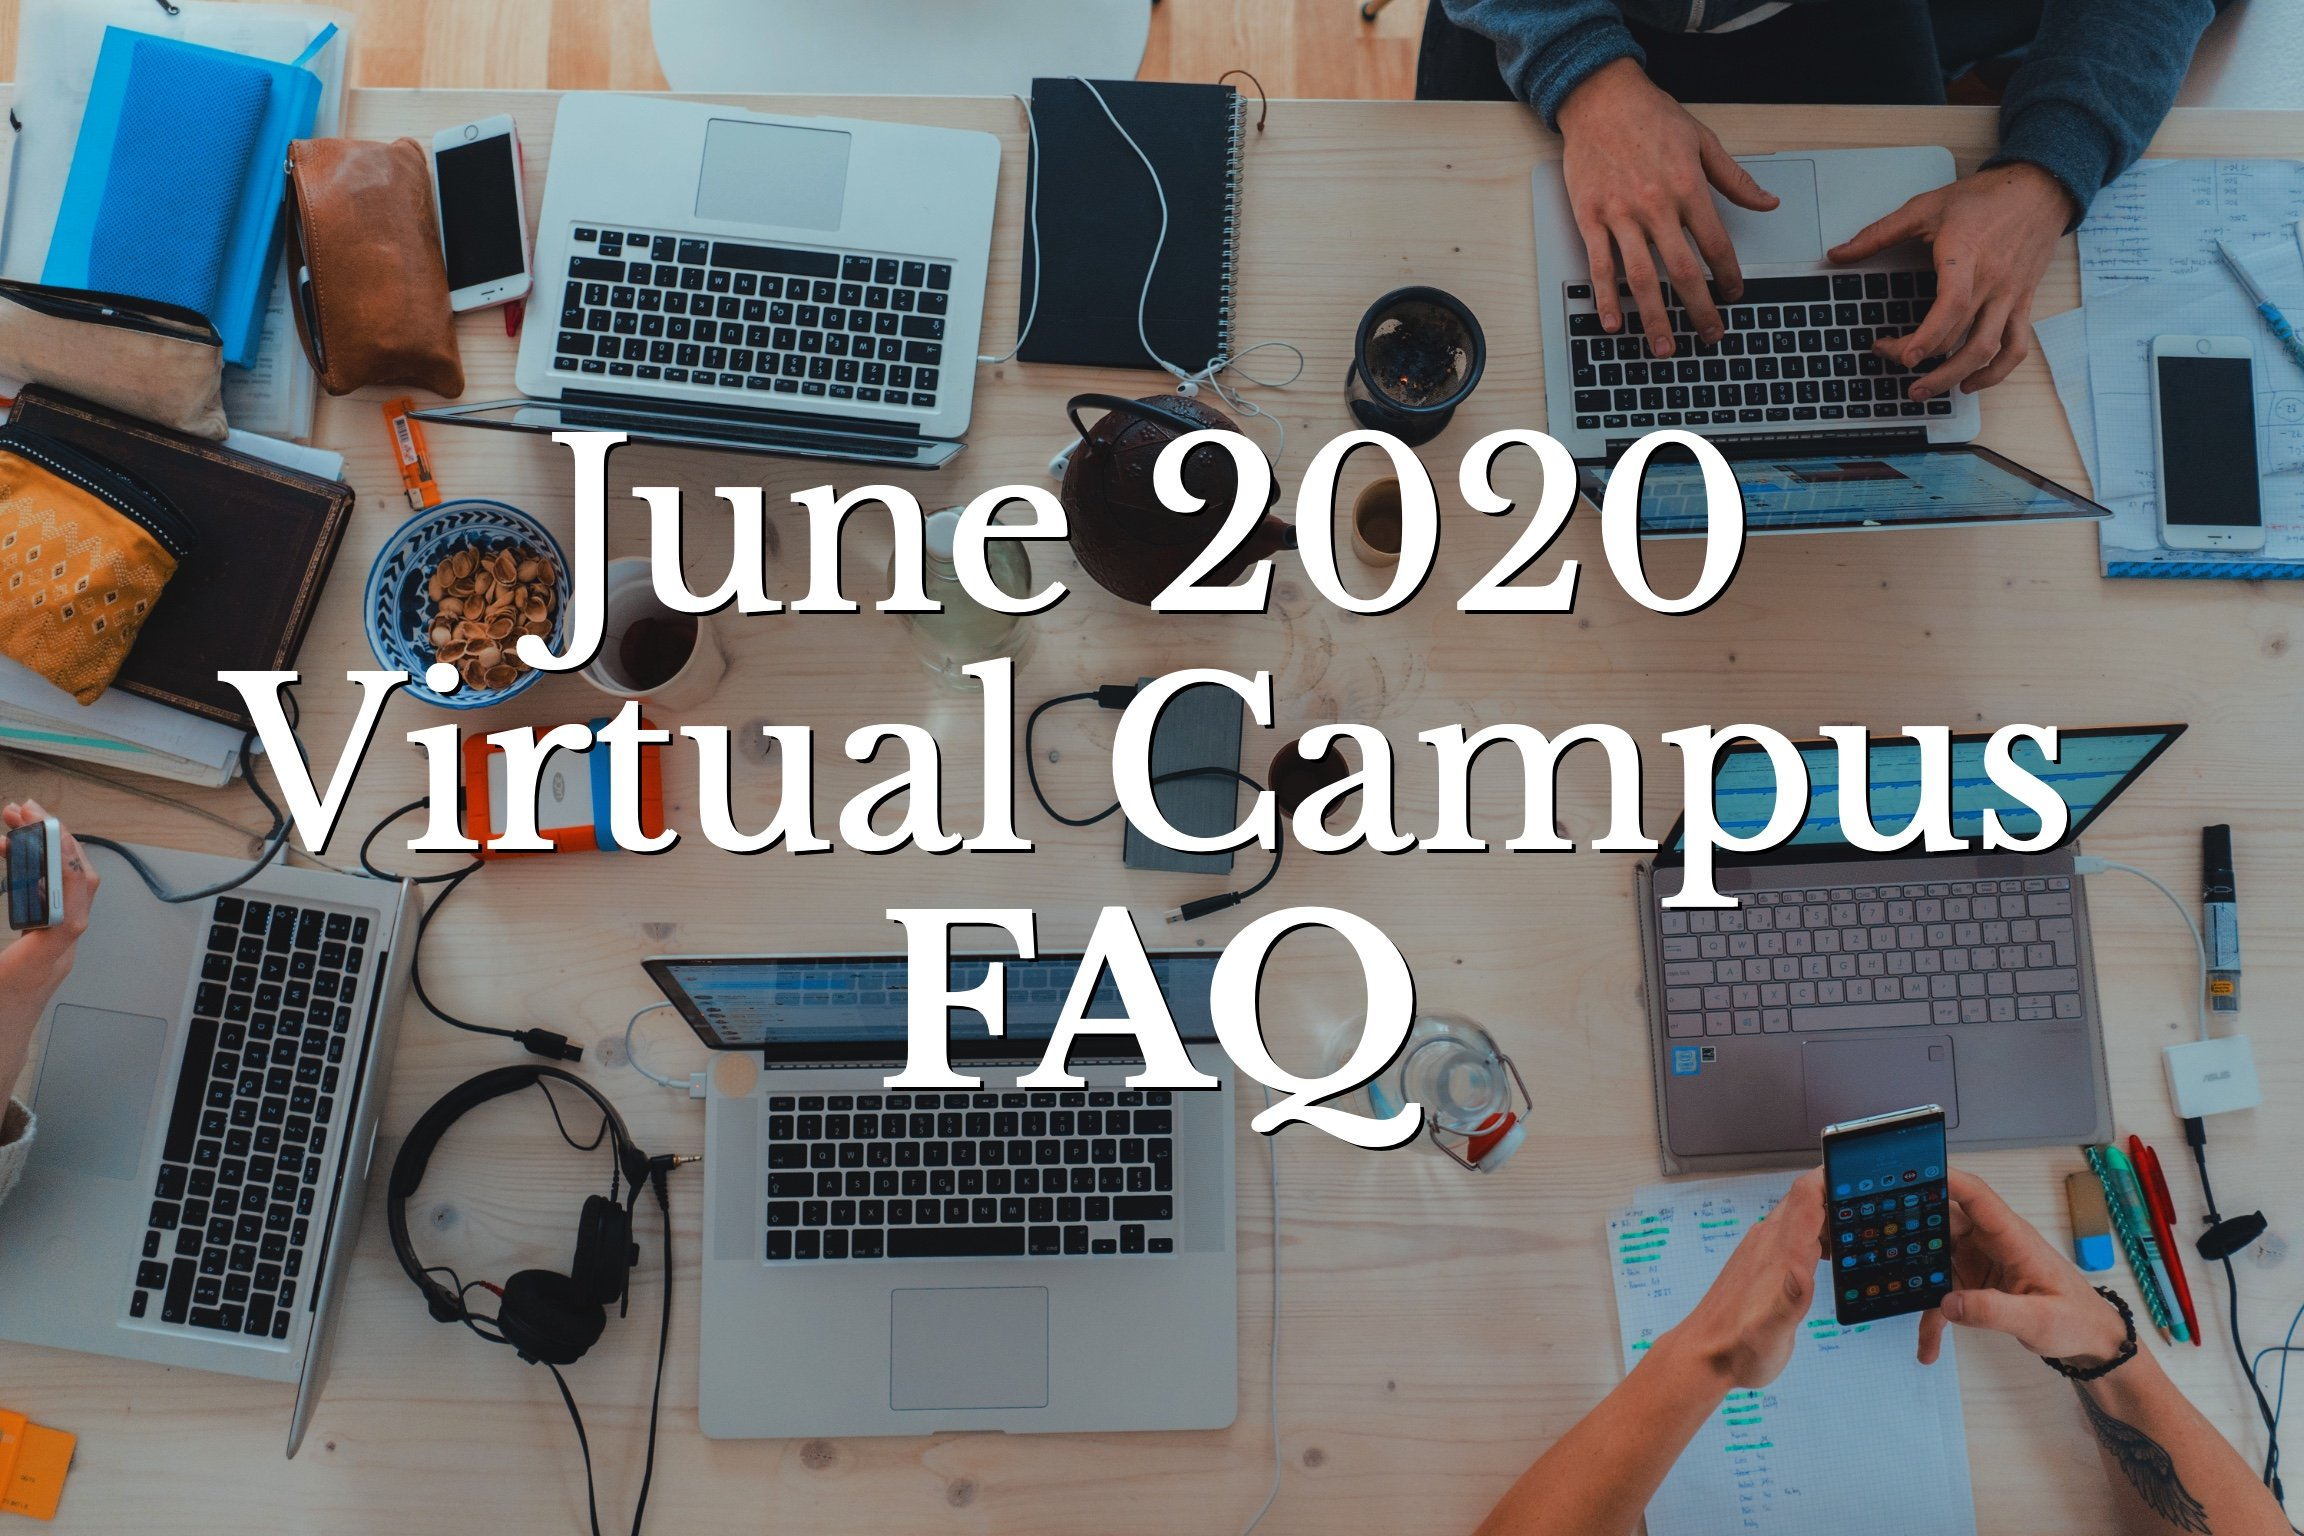 June 2020 Virtual Campus FAQ